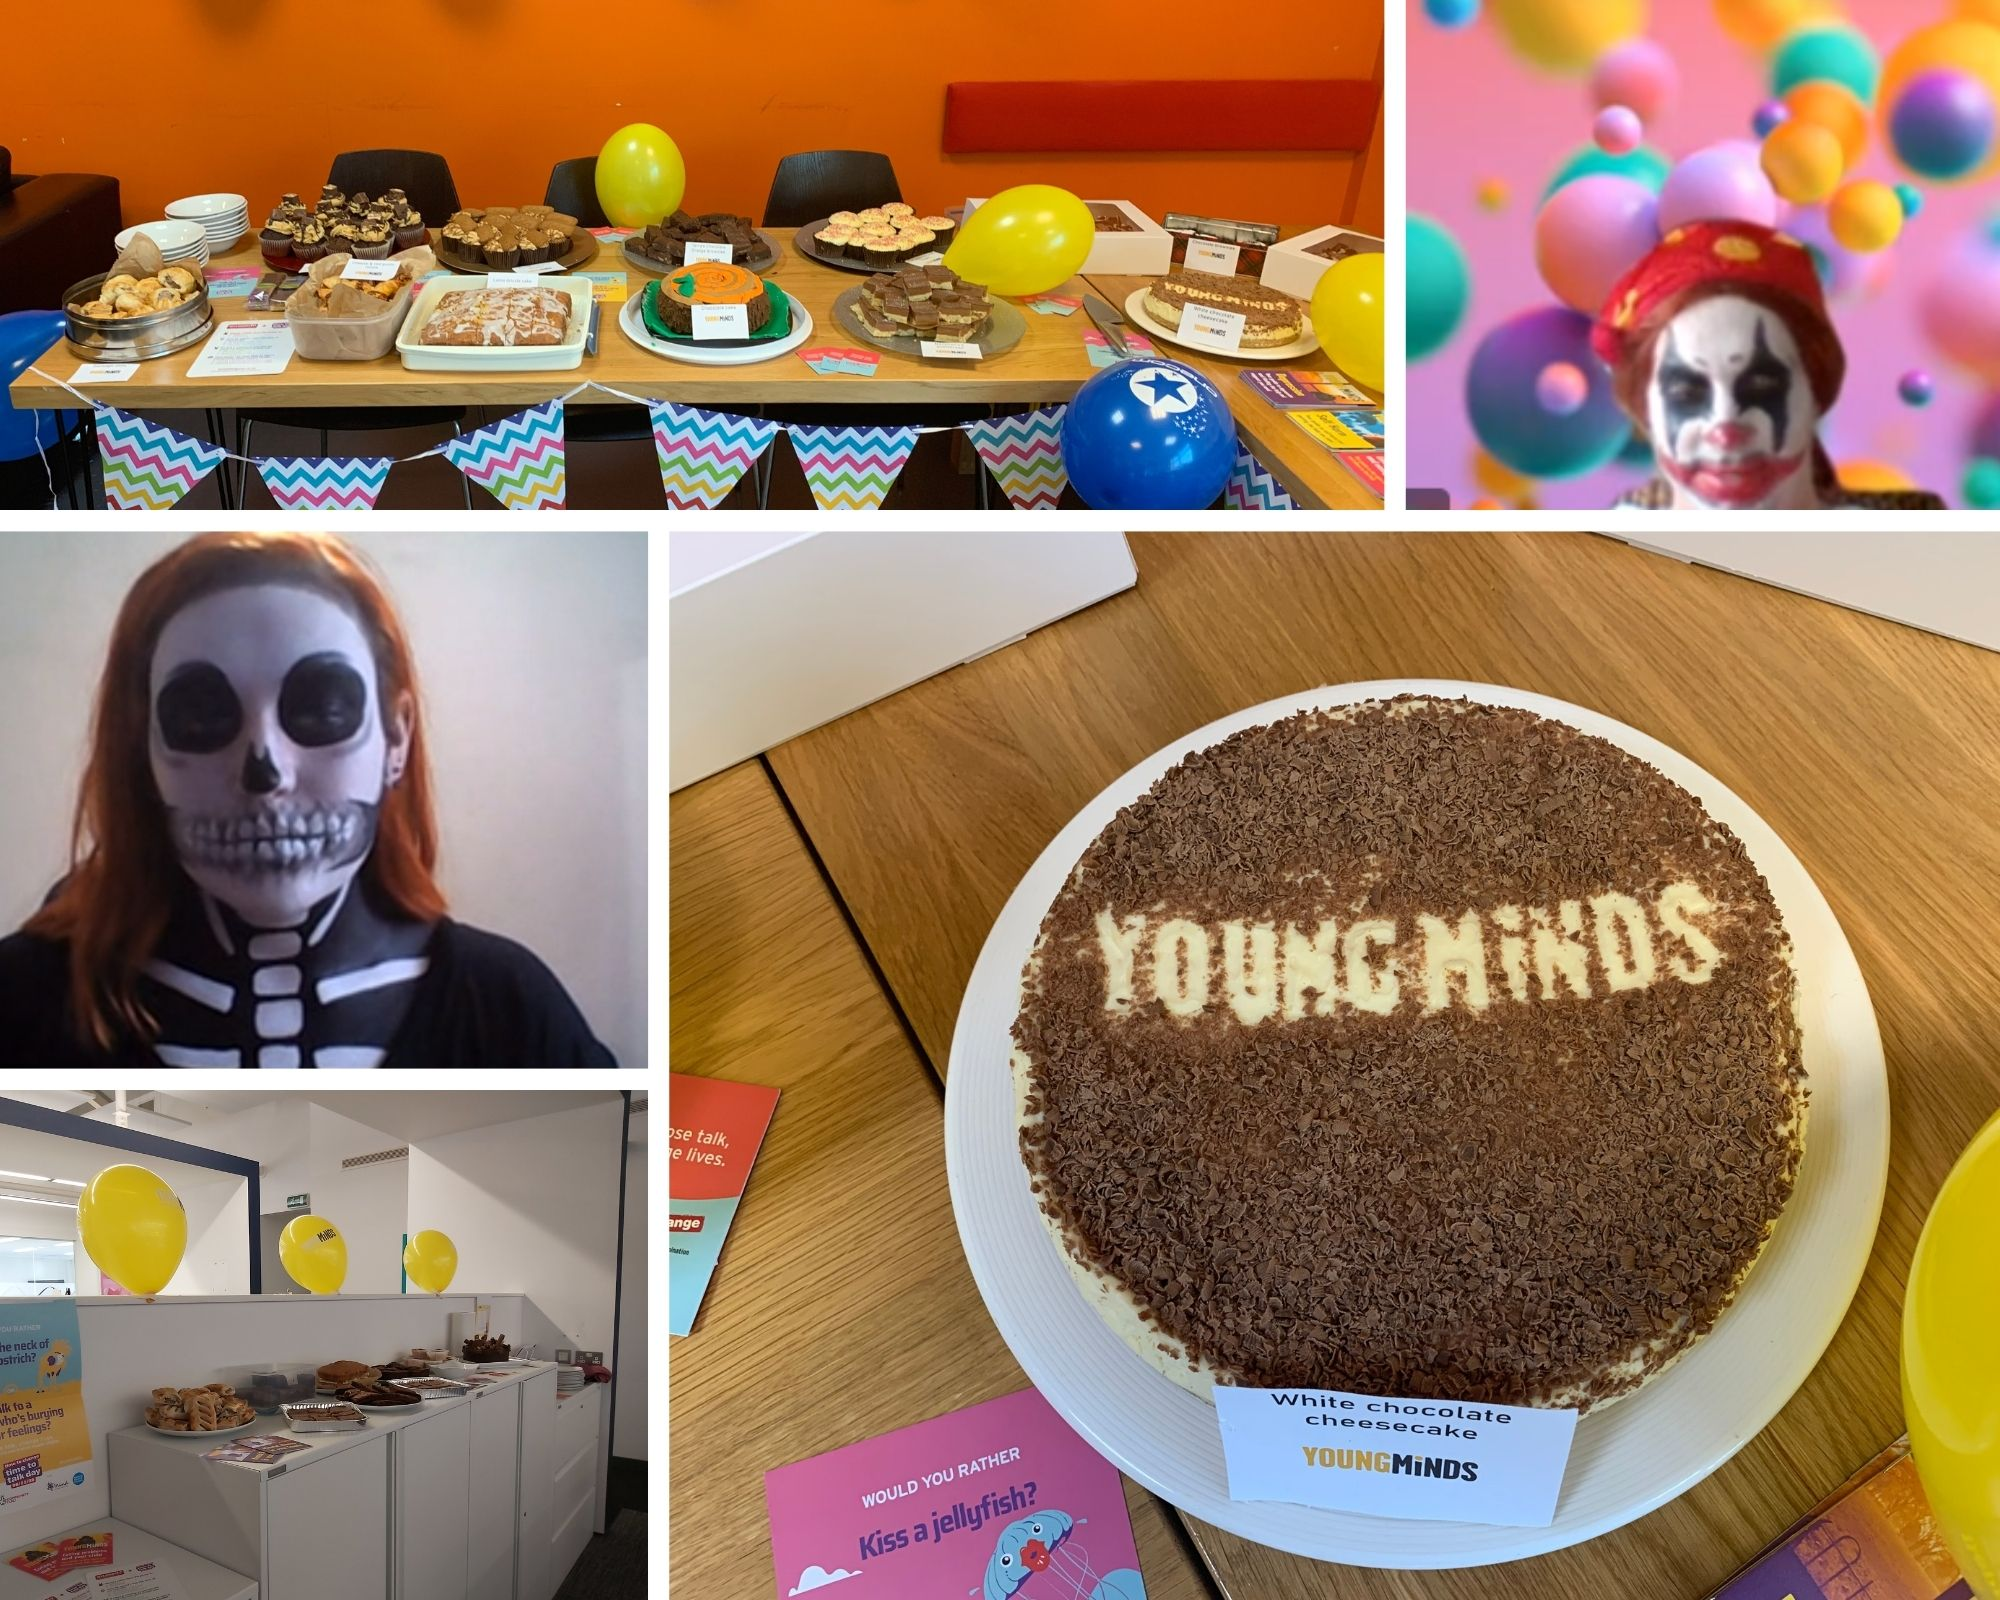 Baking, swimming and running through the year to support YoungMinds